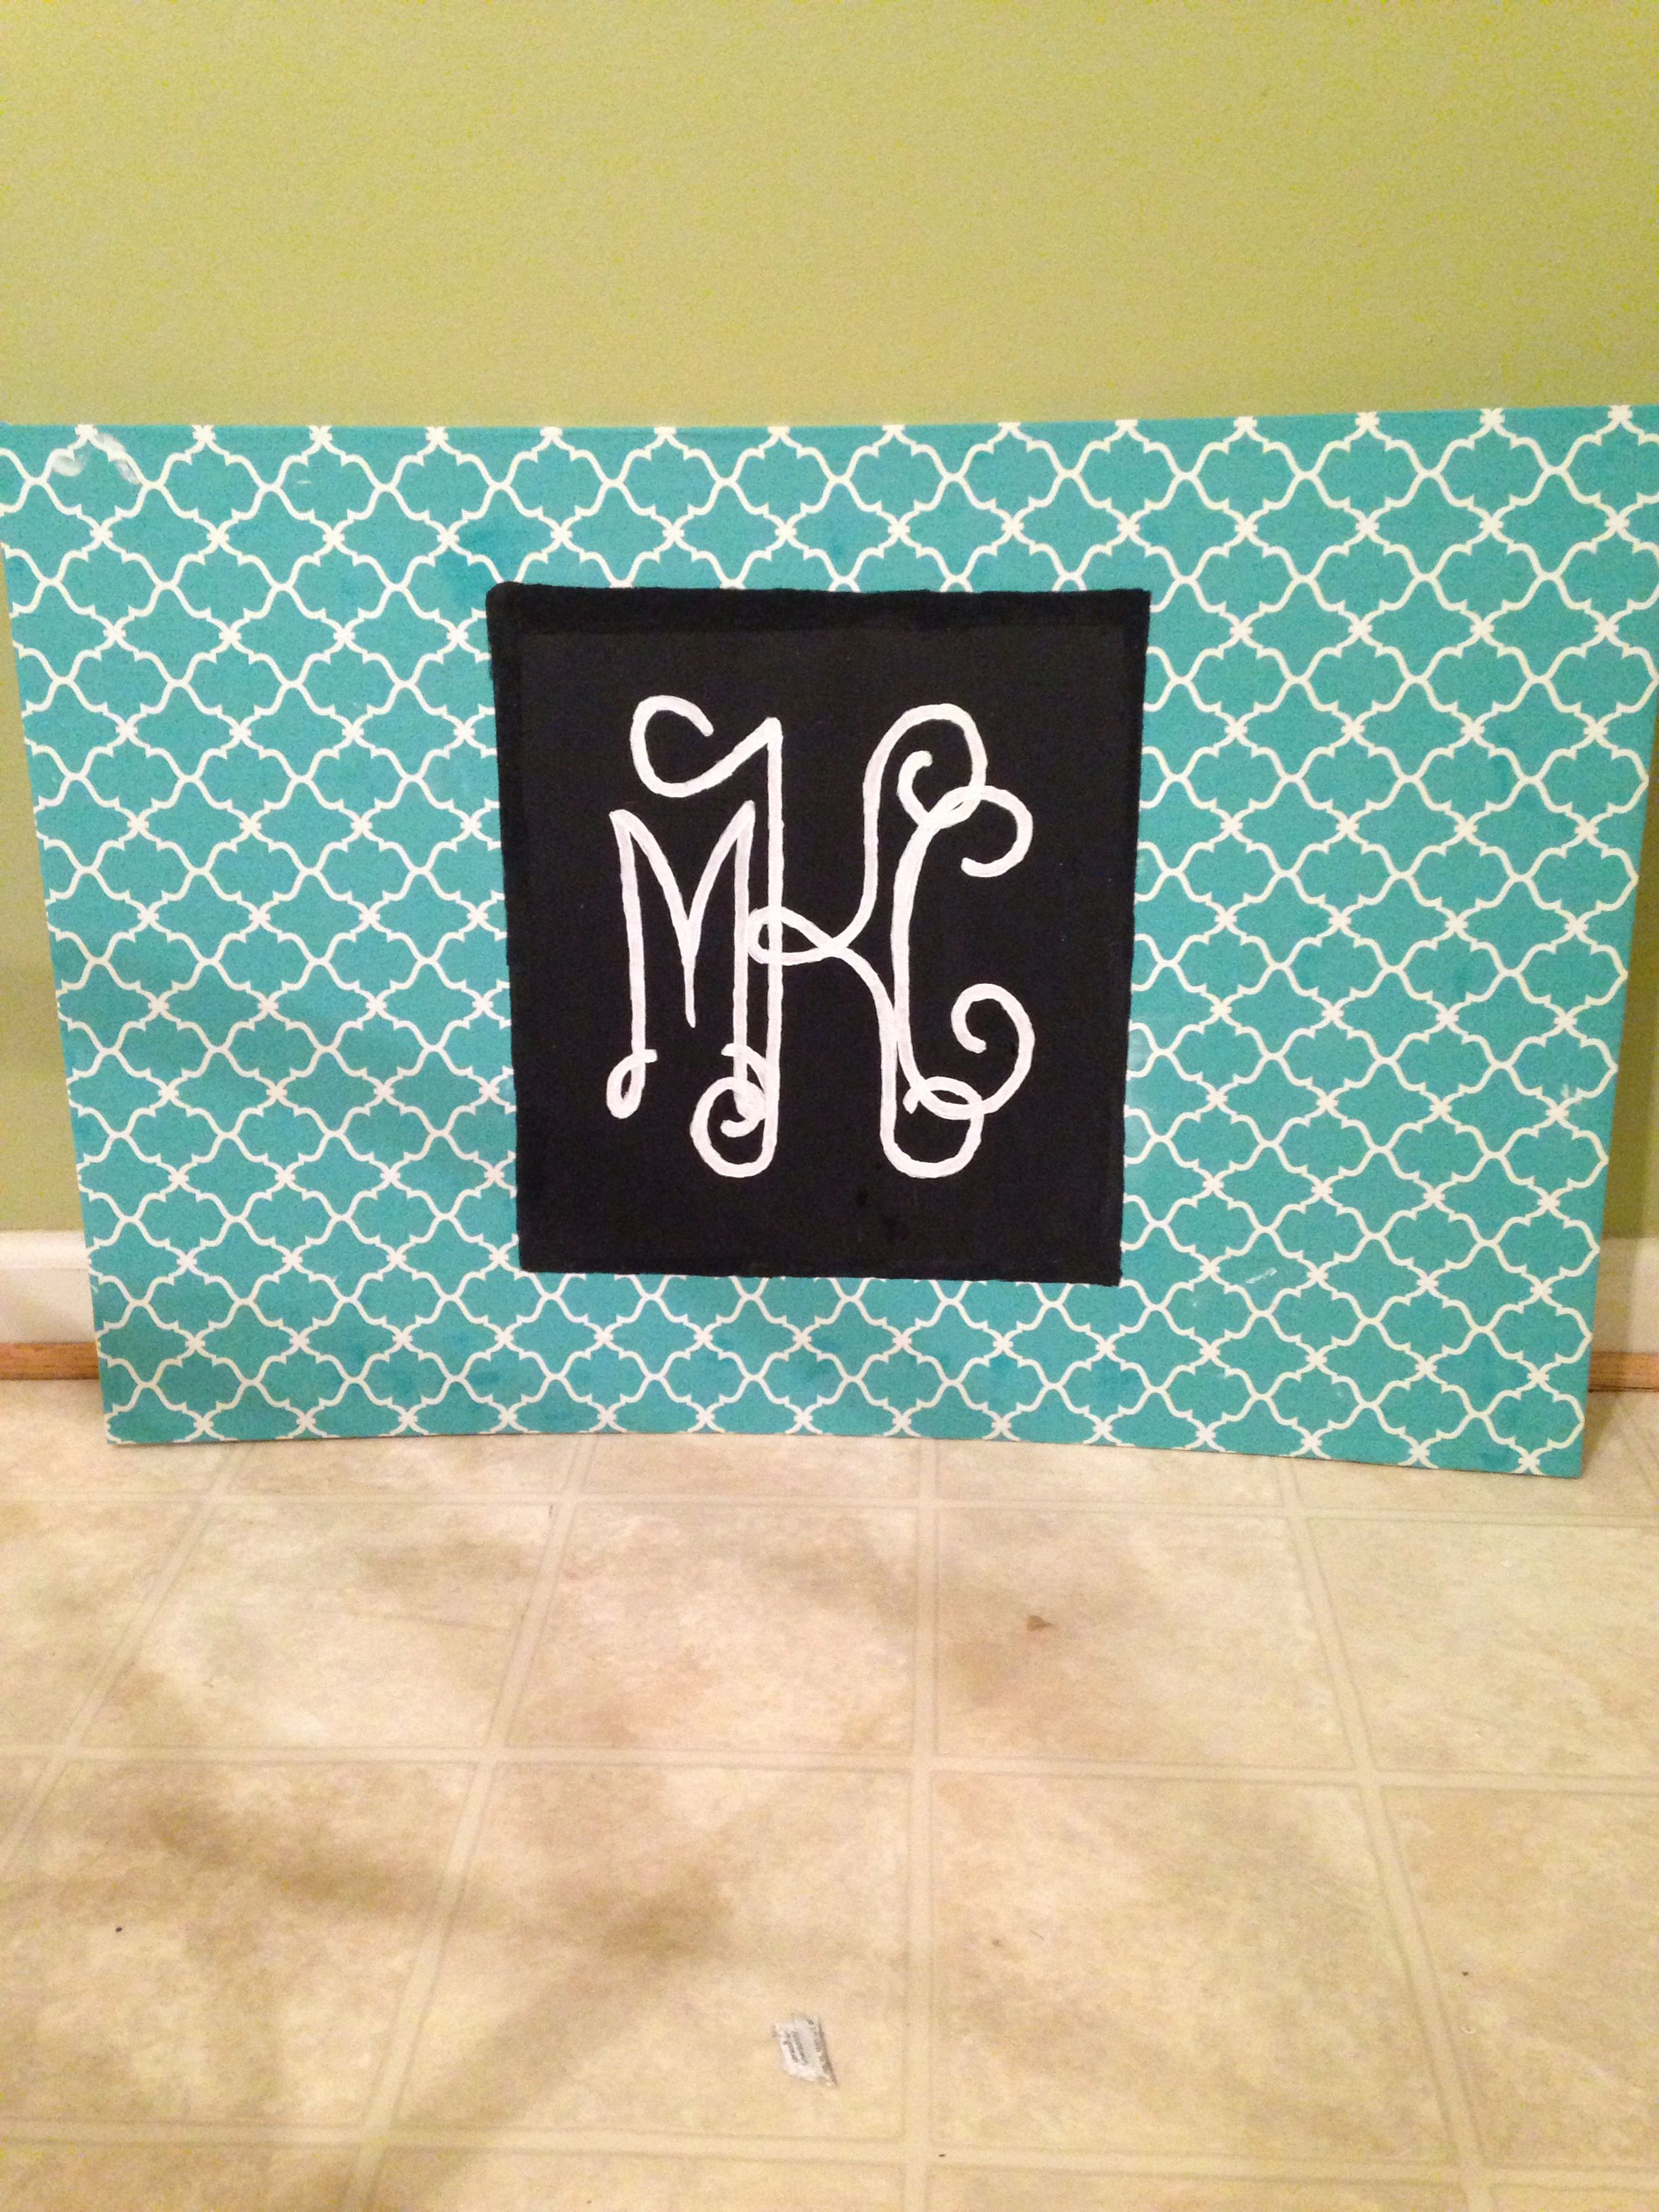 Diy headboard covered in fabric with hand painted monogram a room